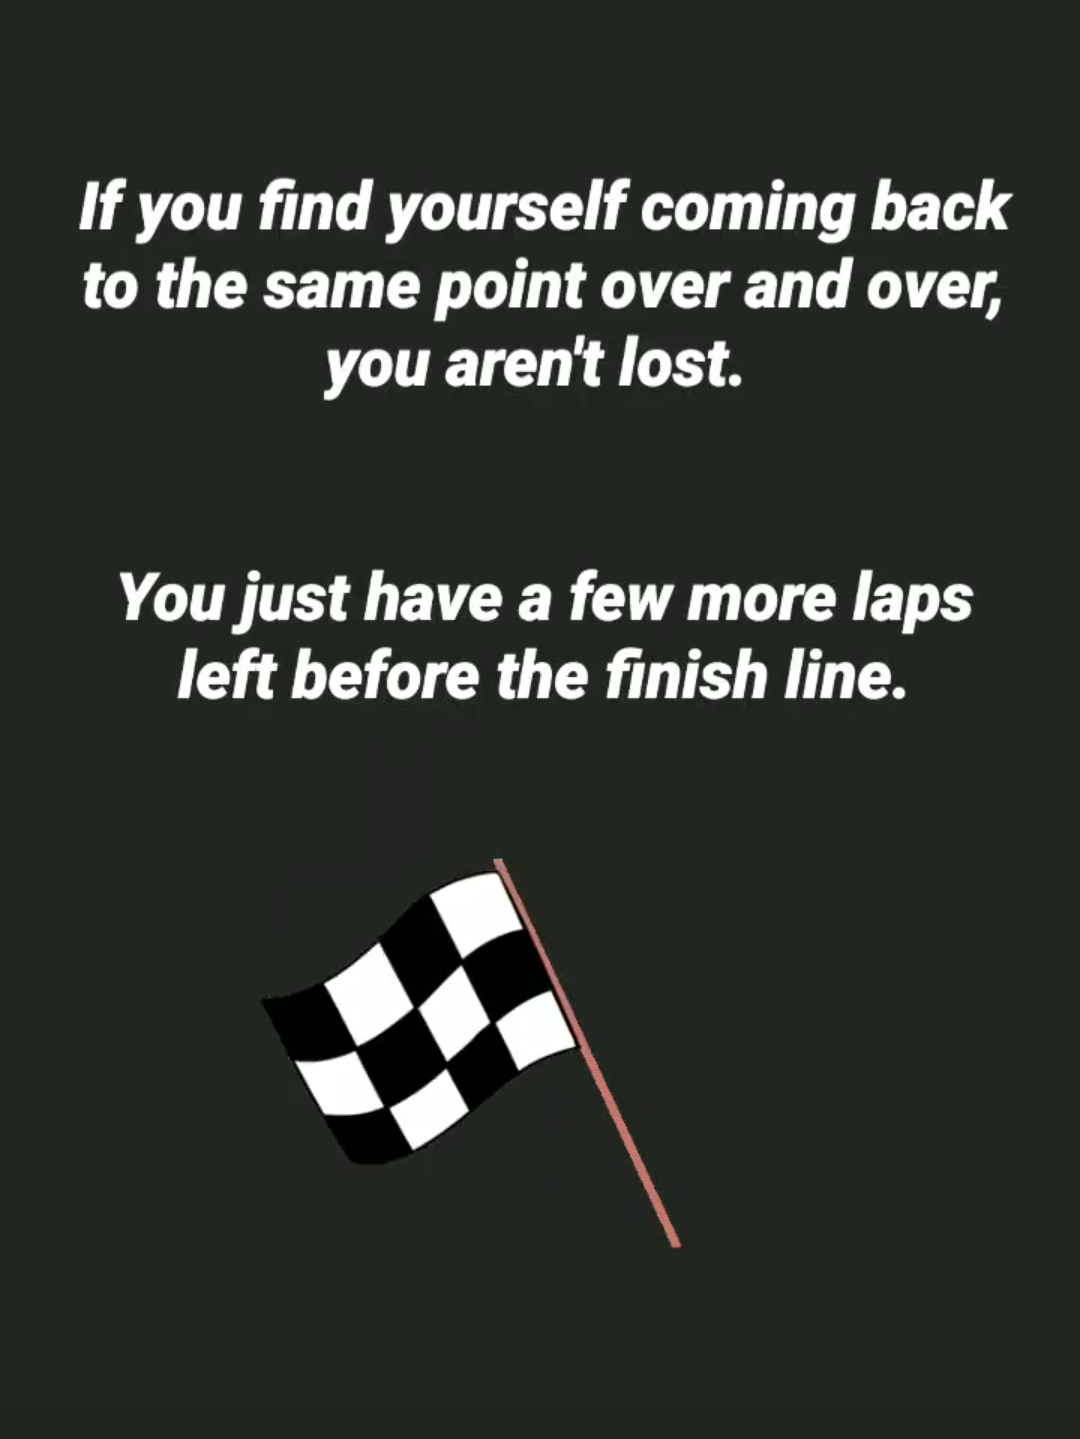 [Image] One step, one sprint, one lap at a time